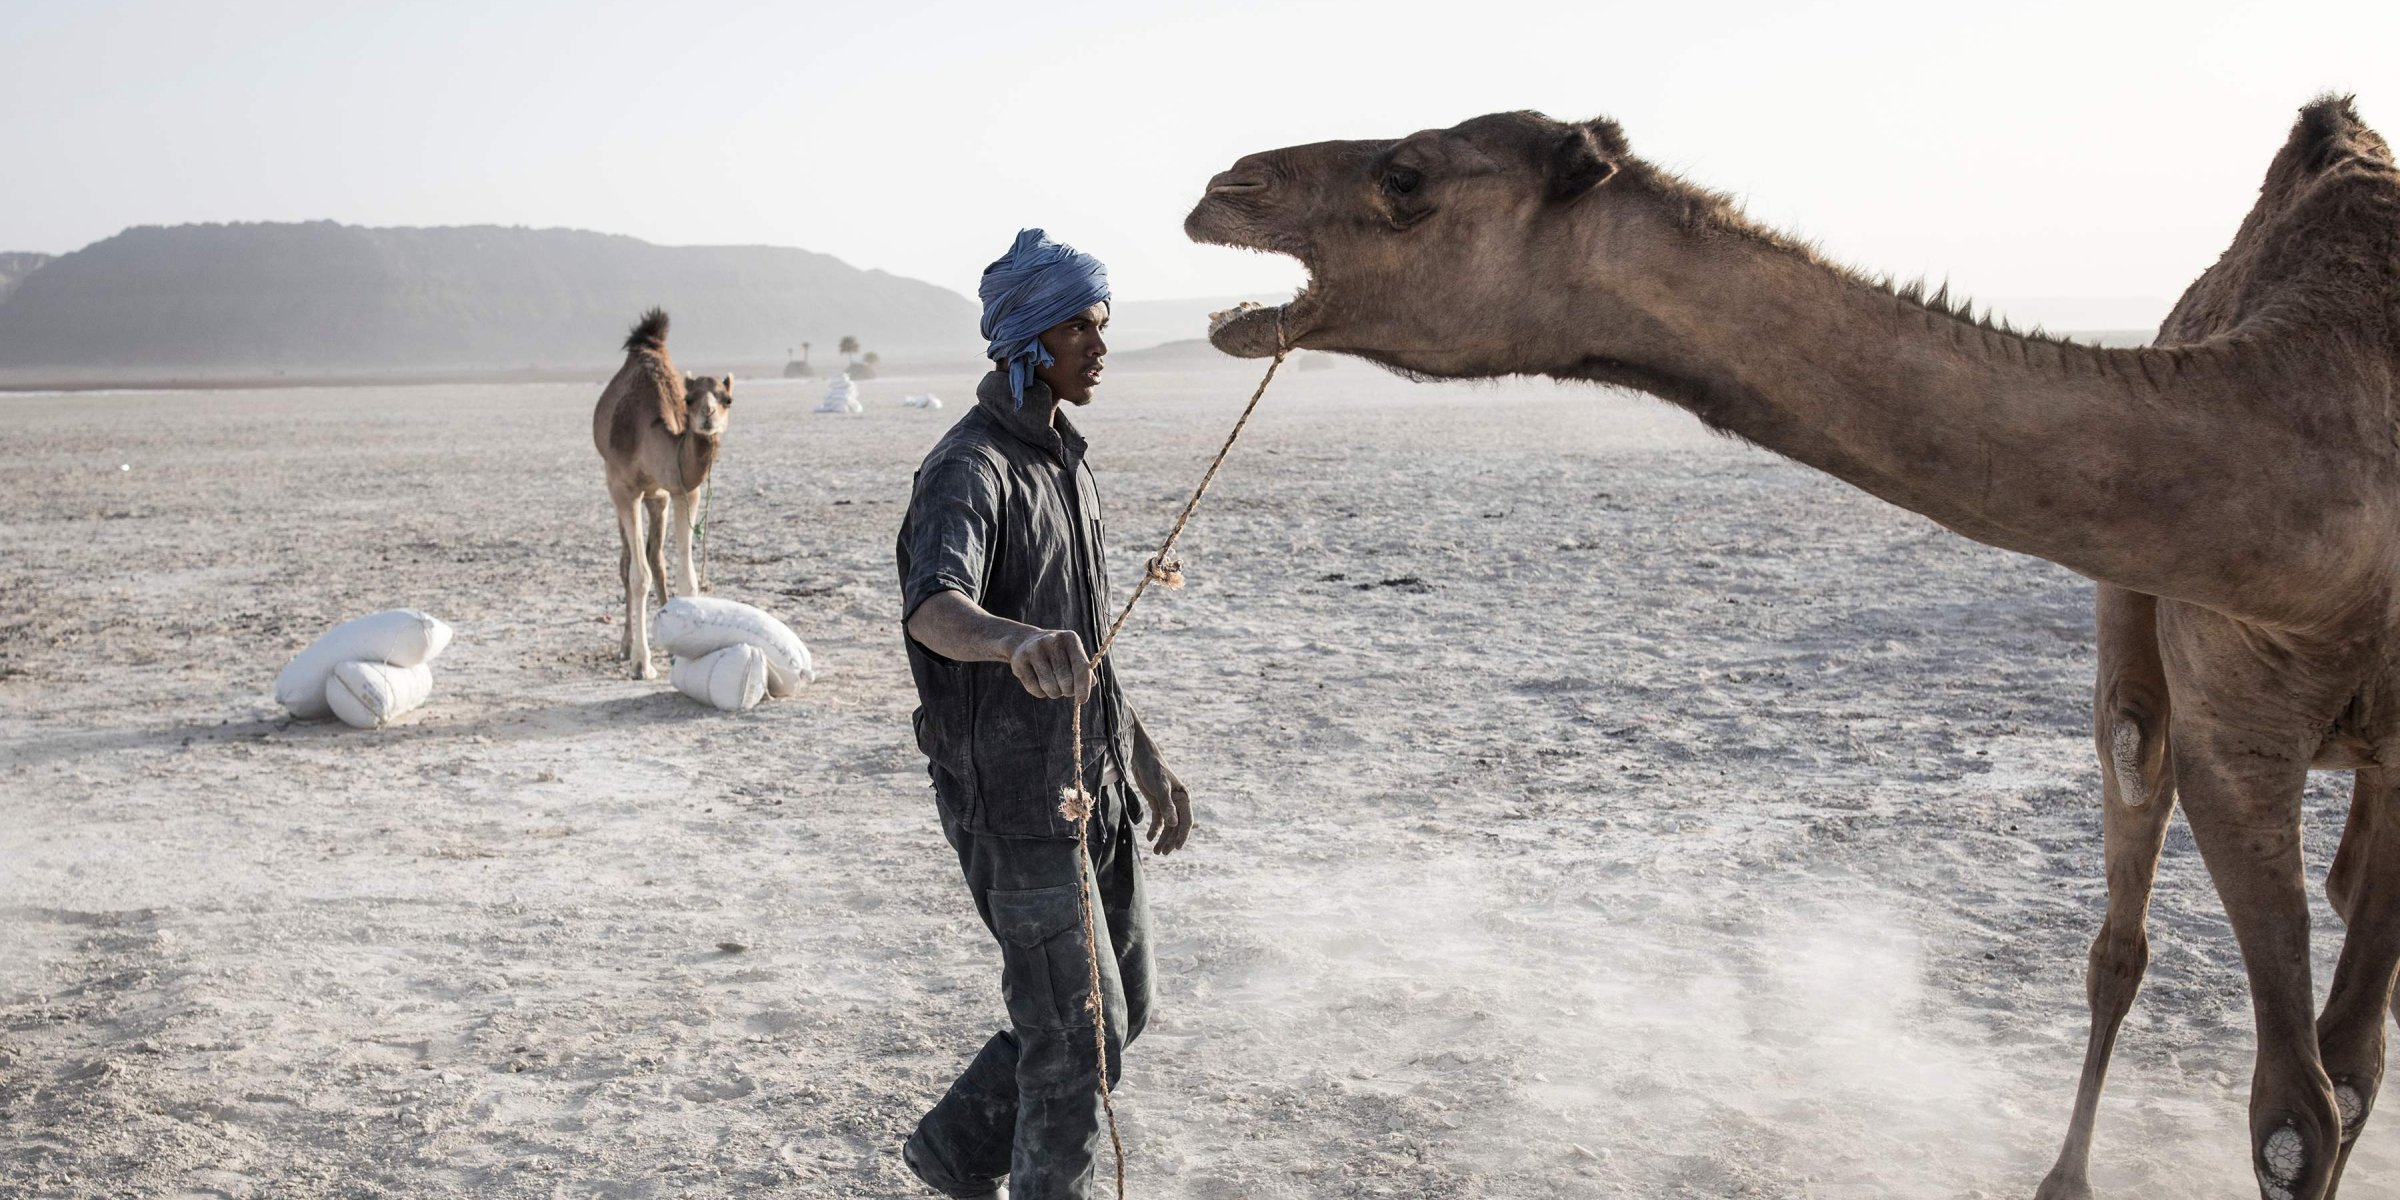 Mobile camel library keeps Ethiopian children from forced labor